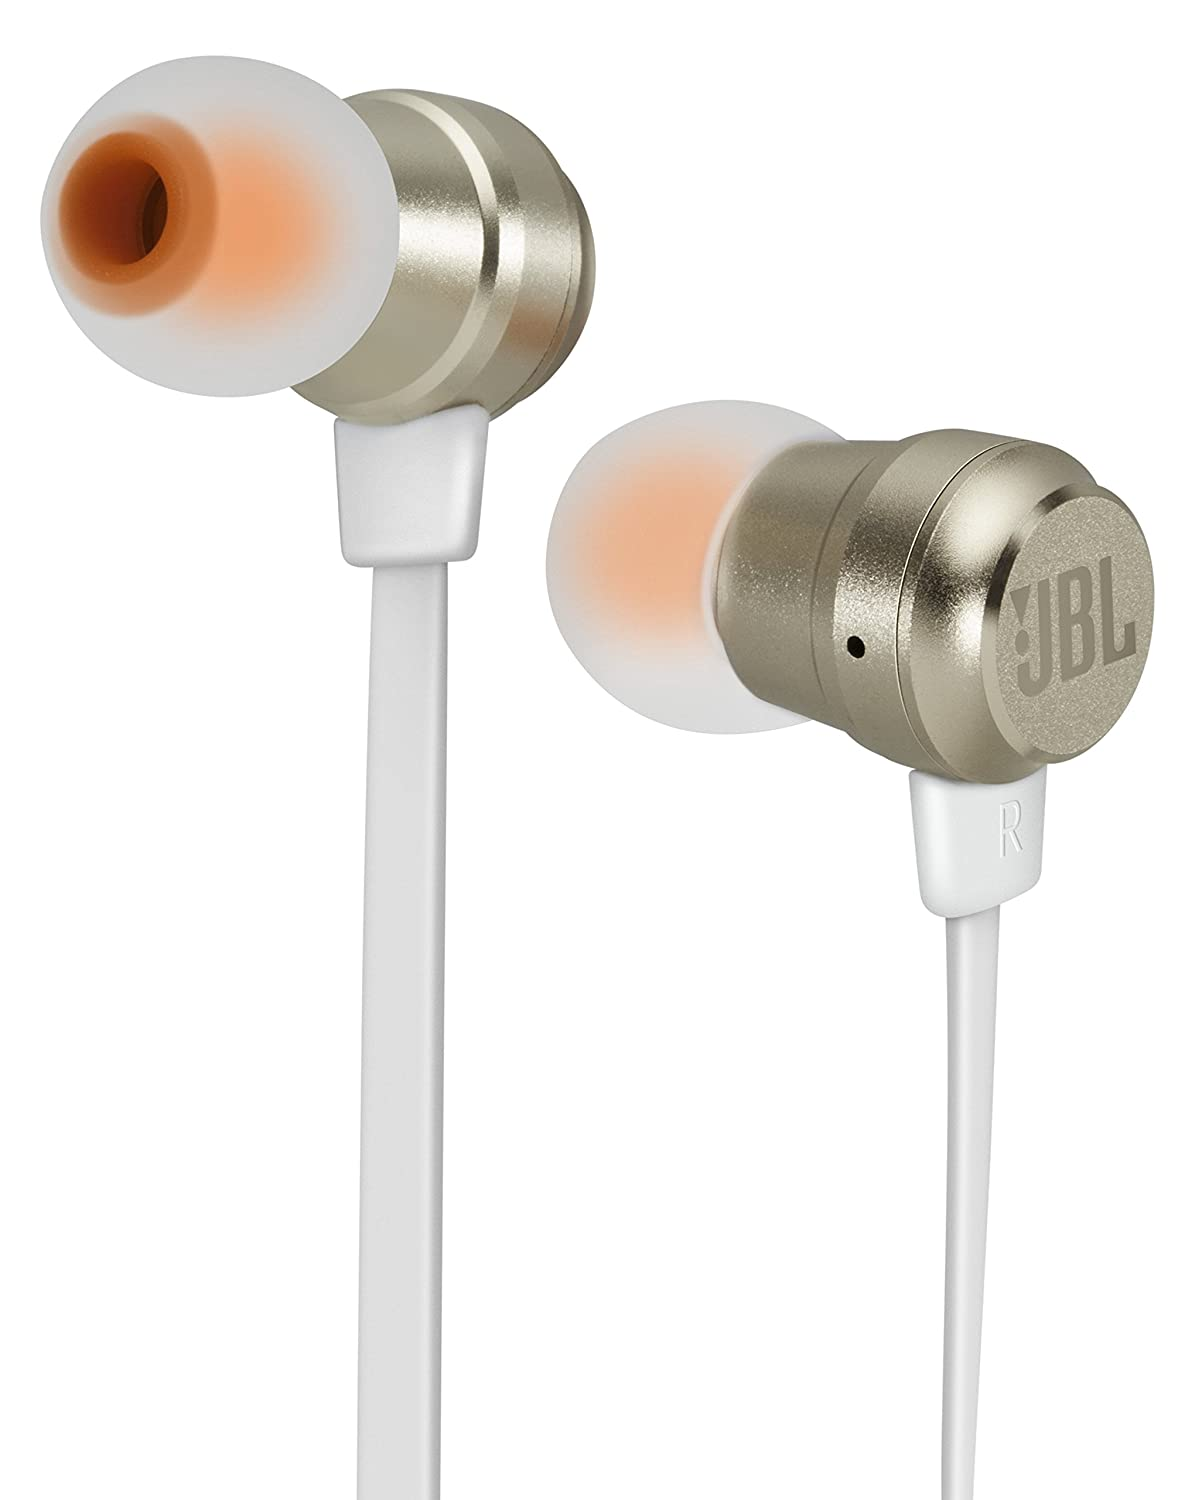 jbl headphones wireless gold. buy jbl t280a gold in-ear headphones online at low prices in india - amazon.in jbl wireless p